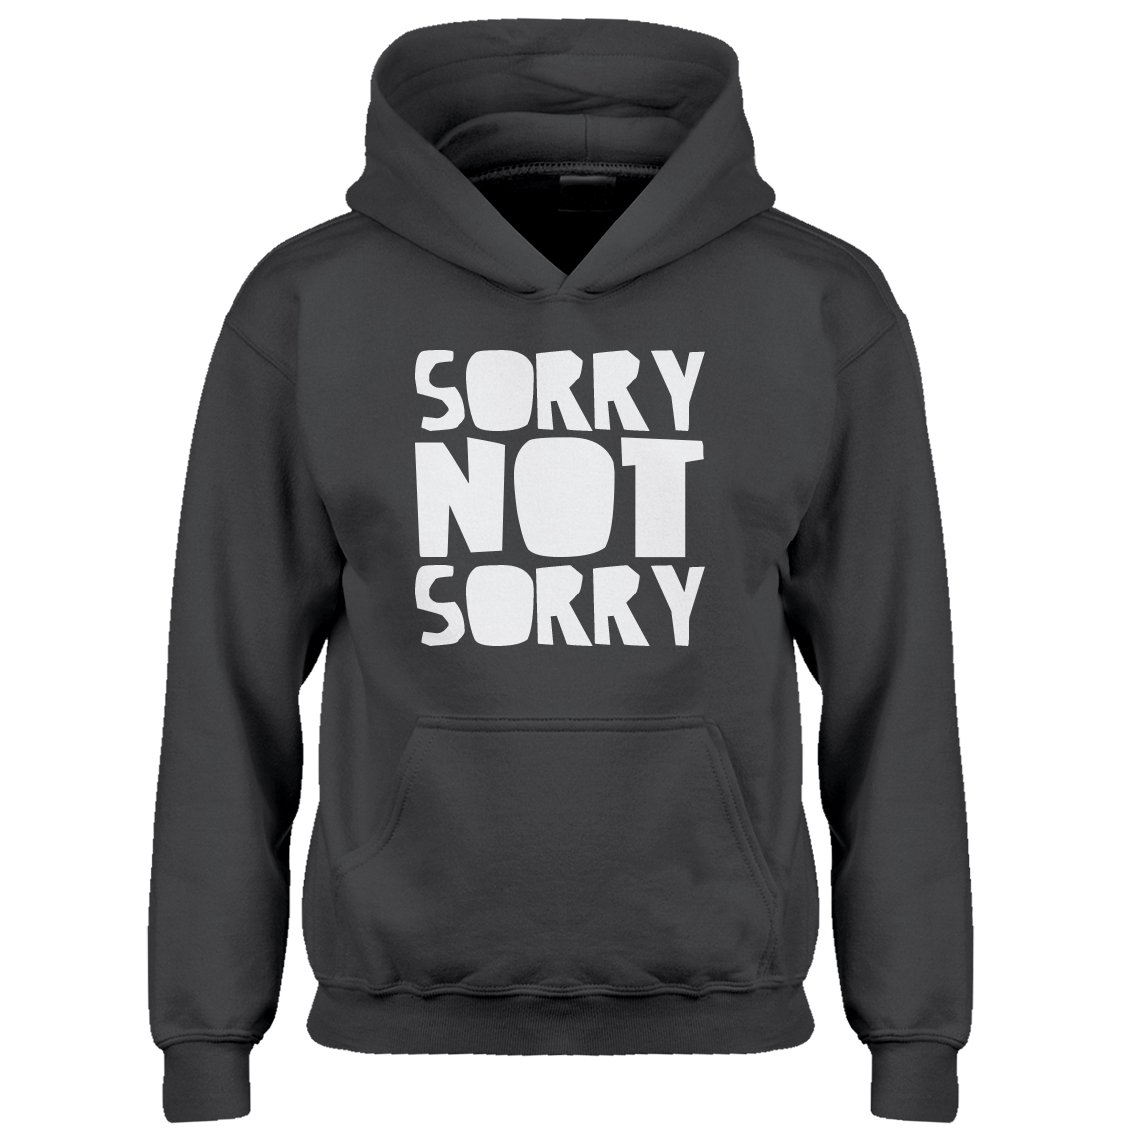 Hoodie for Kids Sorry Not Sorry